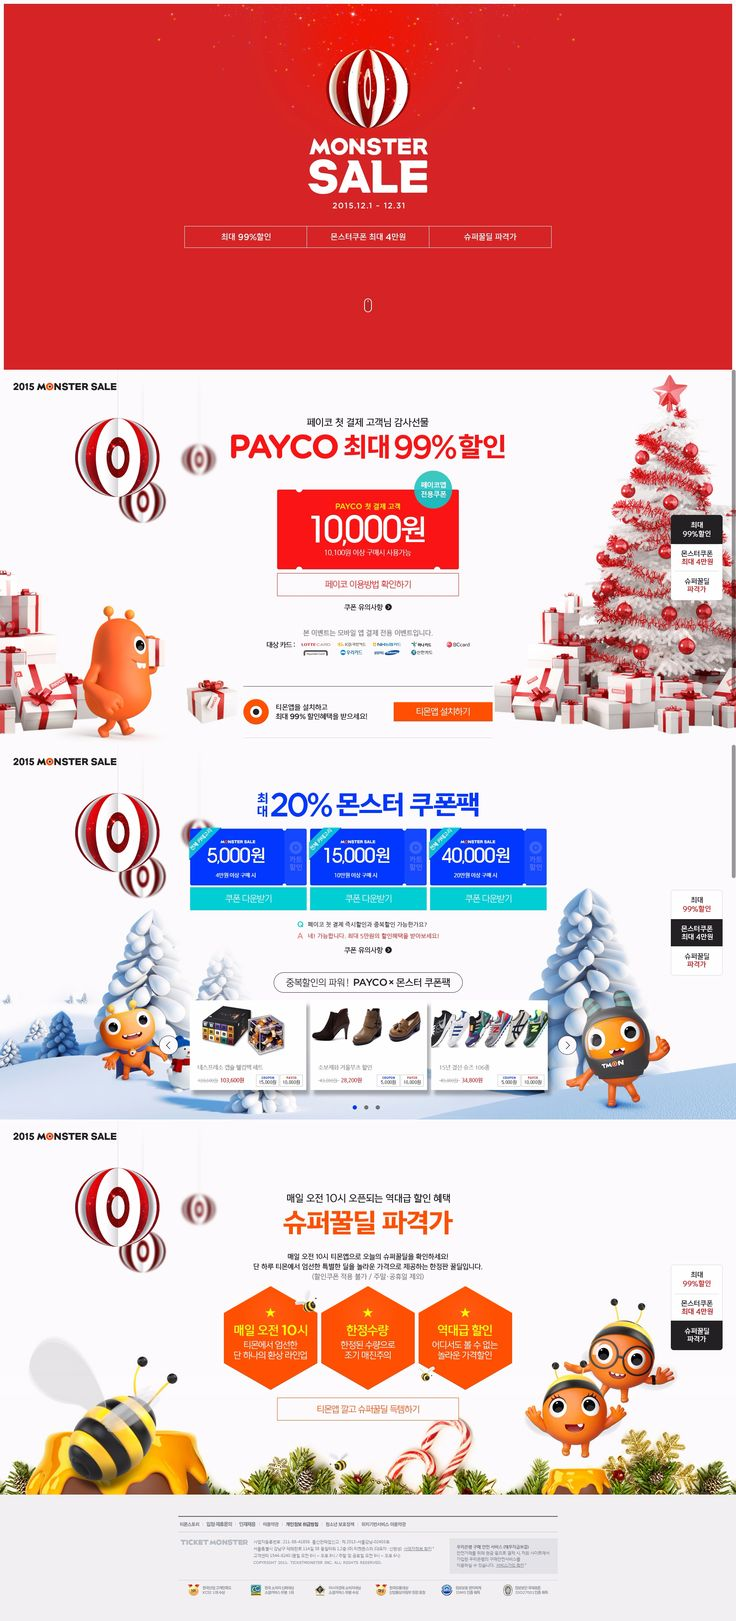 114 best 쿠폰 images on Pinterest | Coupon, Coupons and Mobile design